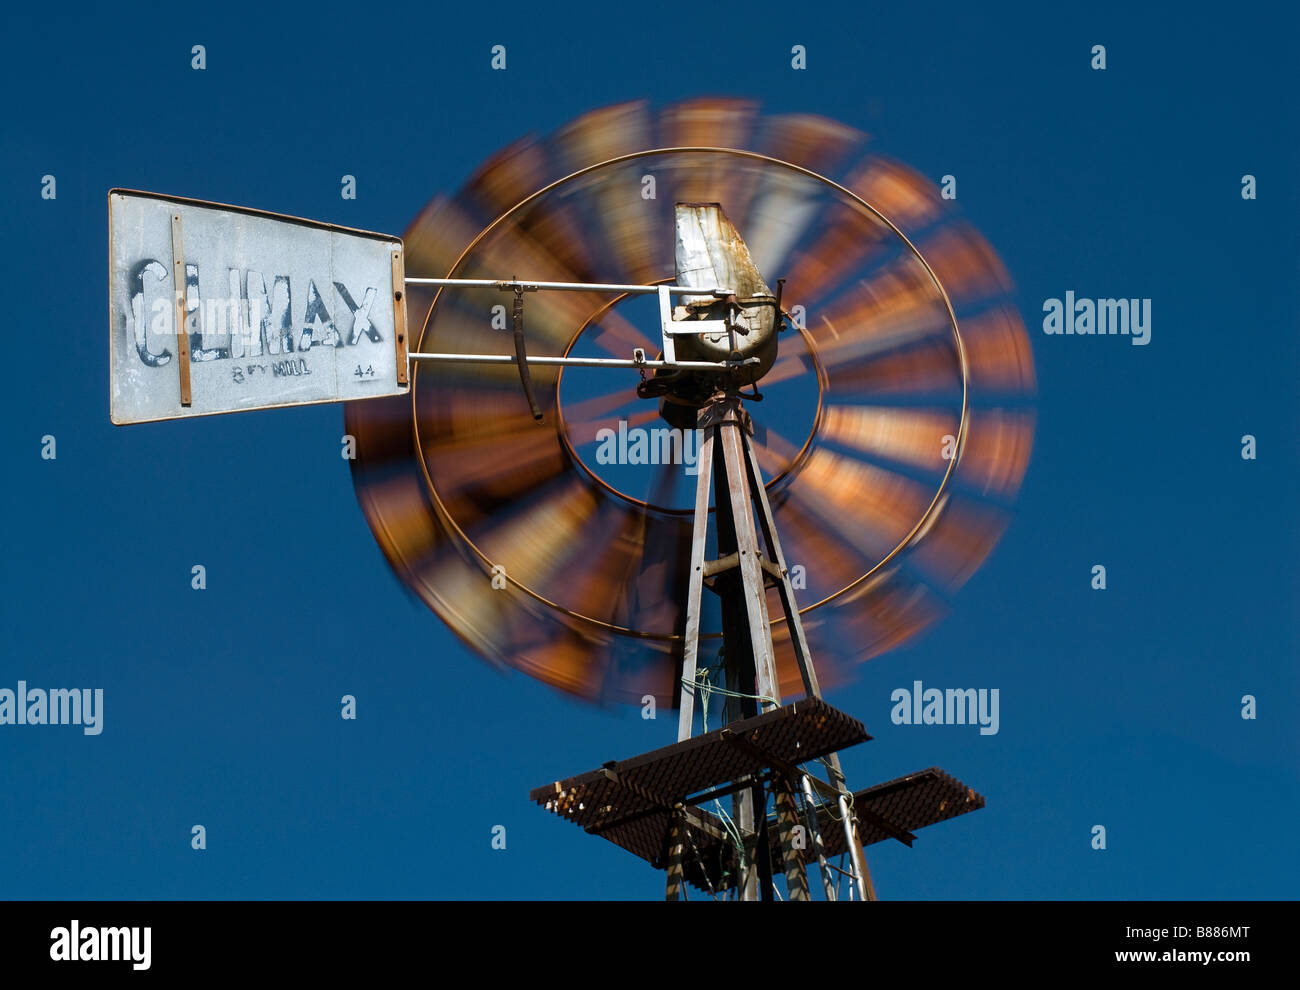 A common sight in drought areas of South Africa, a windmill turning in the wind in the Magaliesberg Mountains - Stock Image